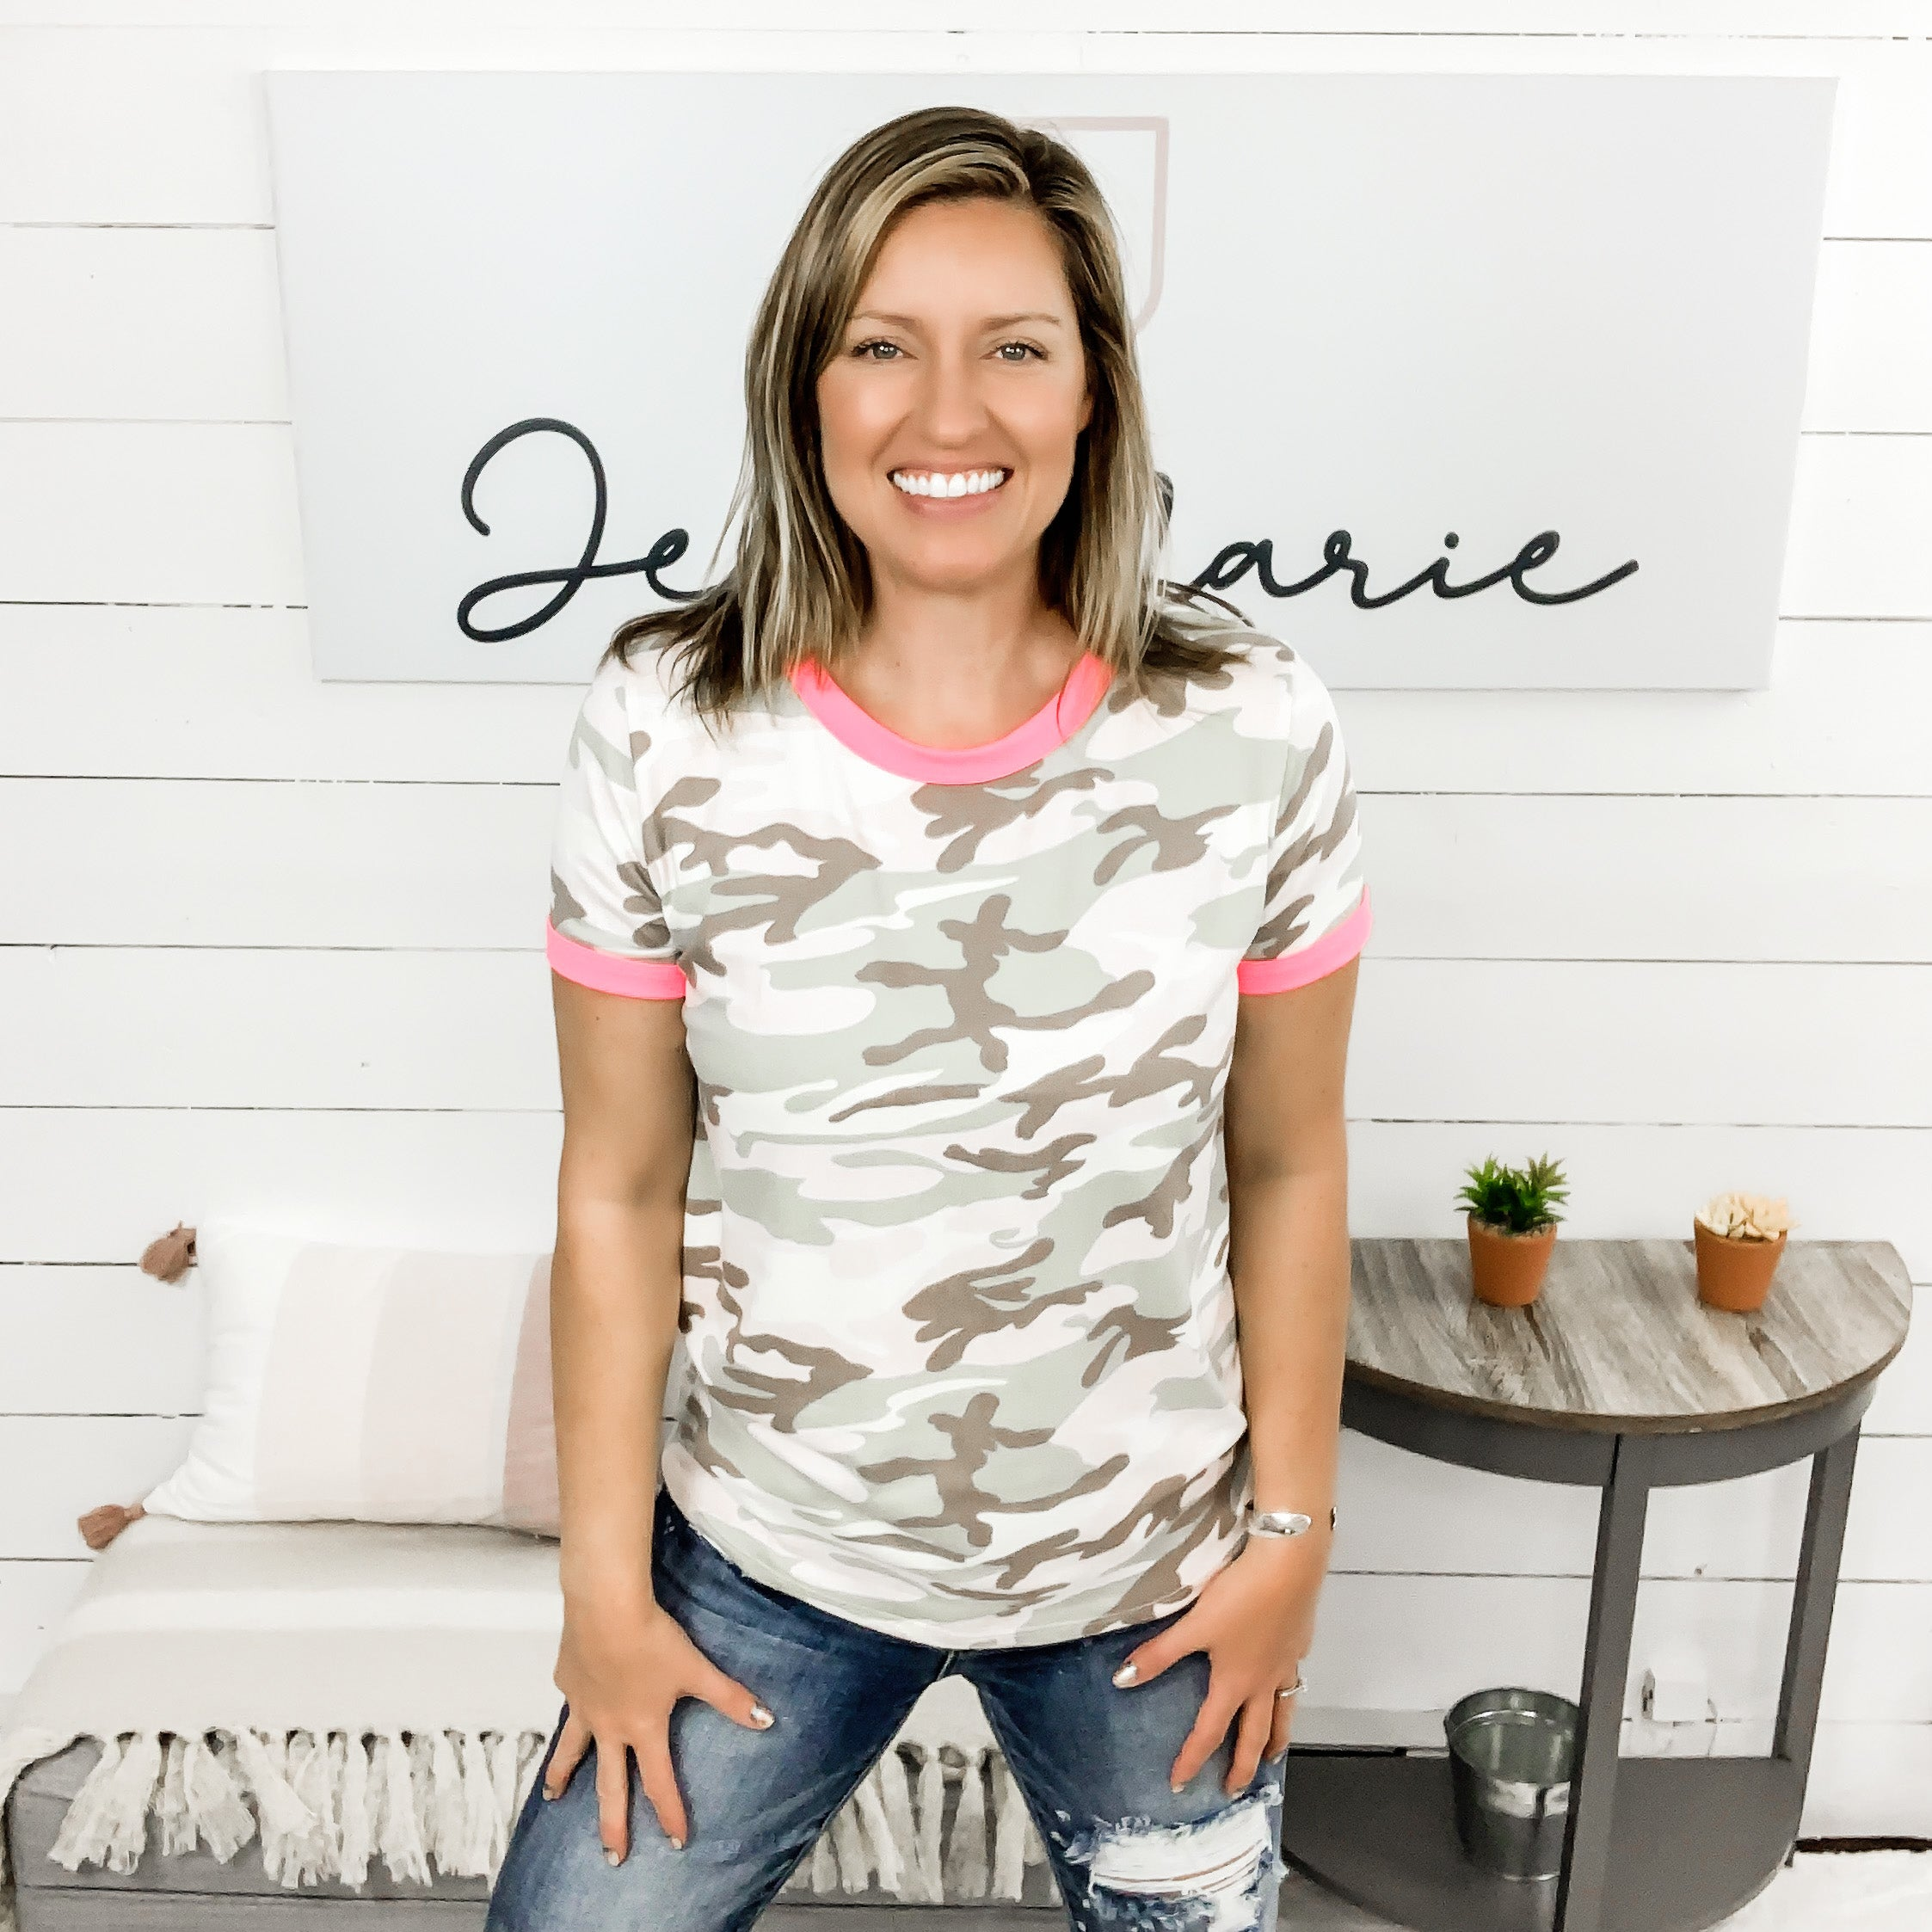 Short Sleeved Camo Top w/ Neon Pink Detail